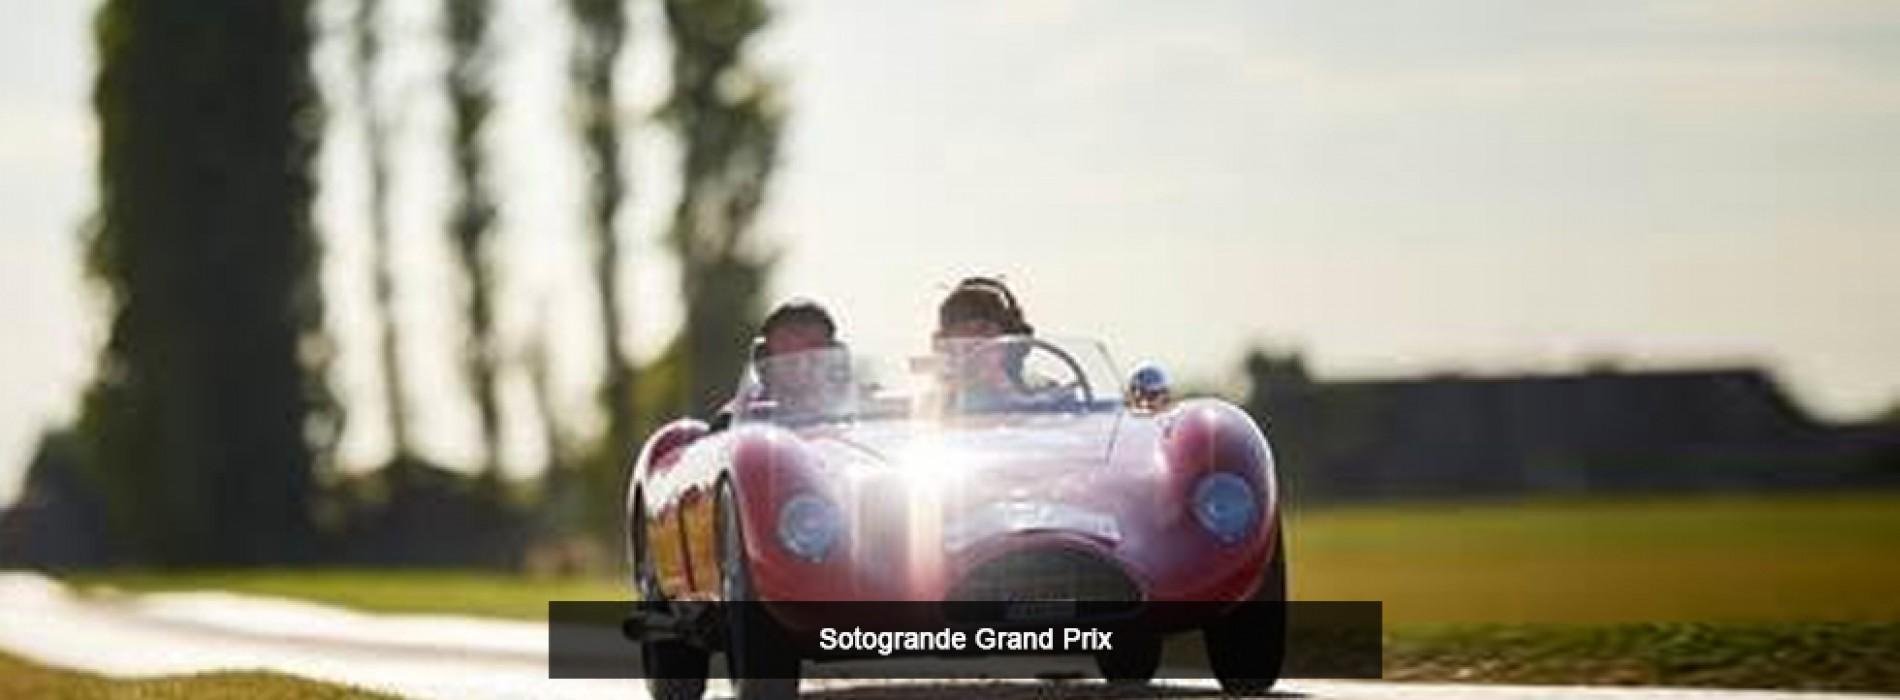 Welcoming the Automobile Elite to Andalusia – Sotogrande Grand Prix®